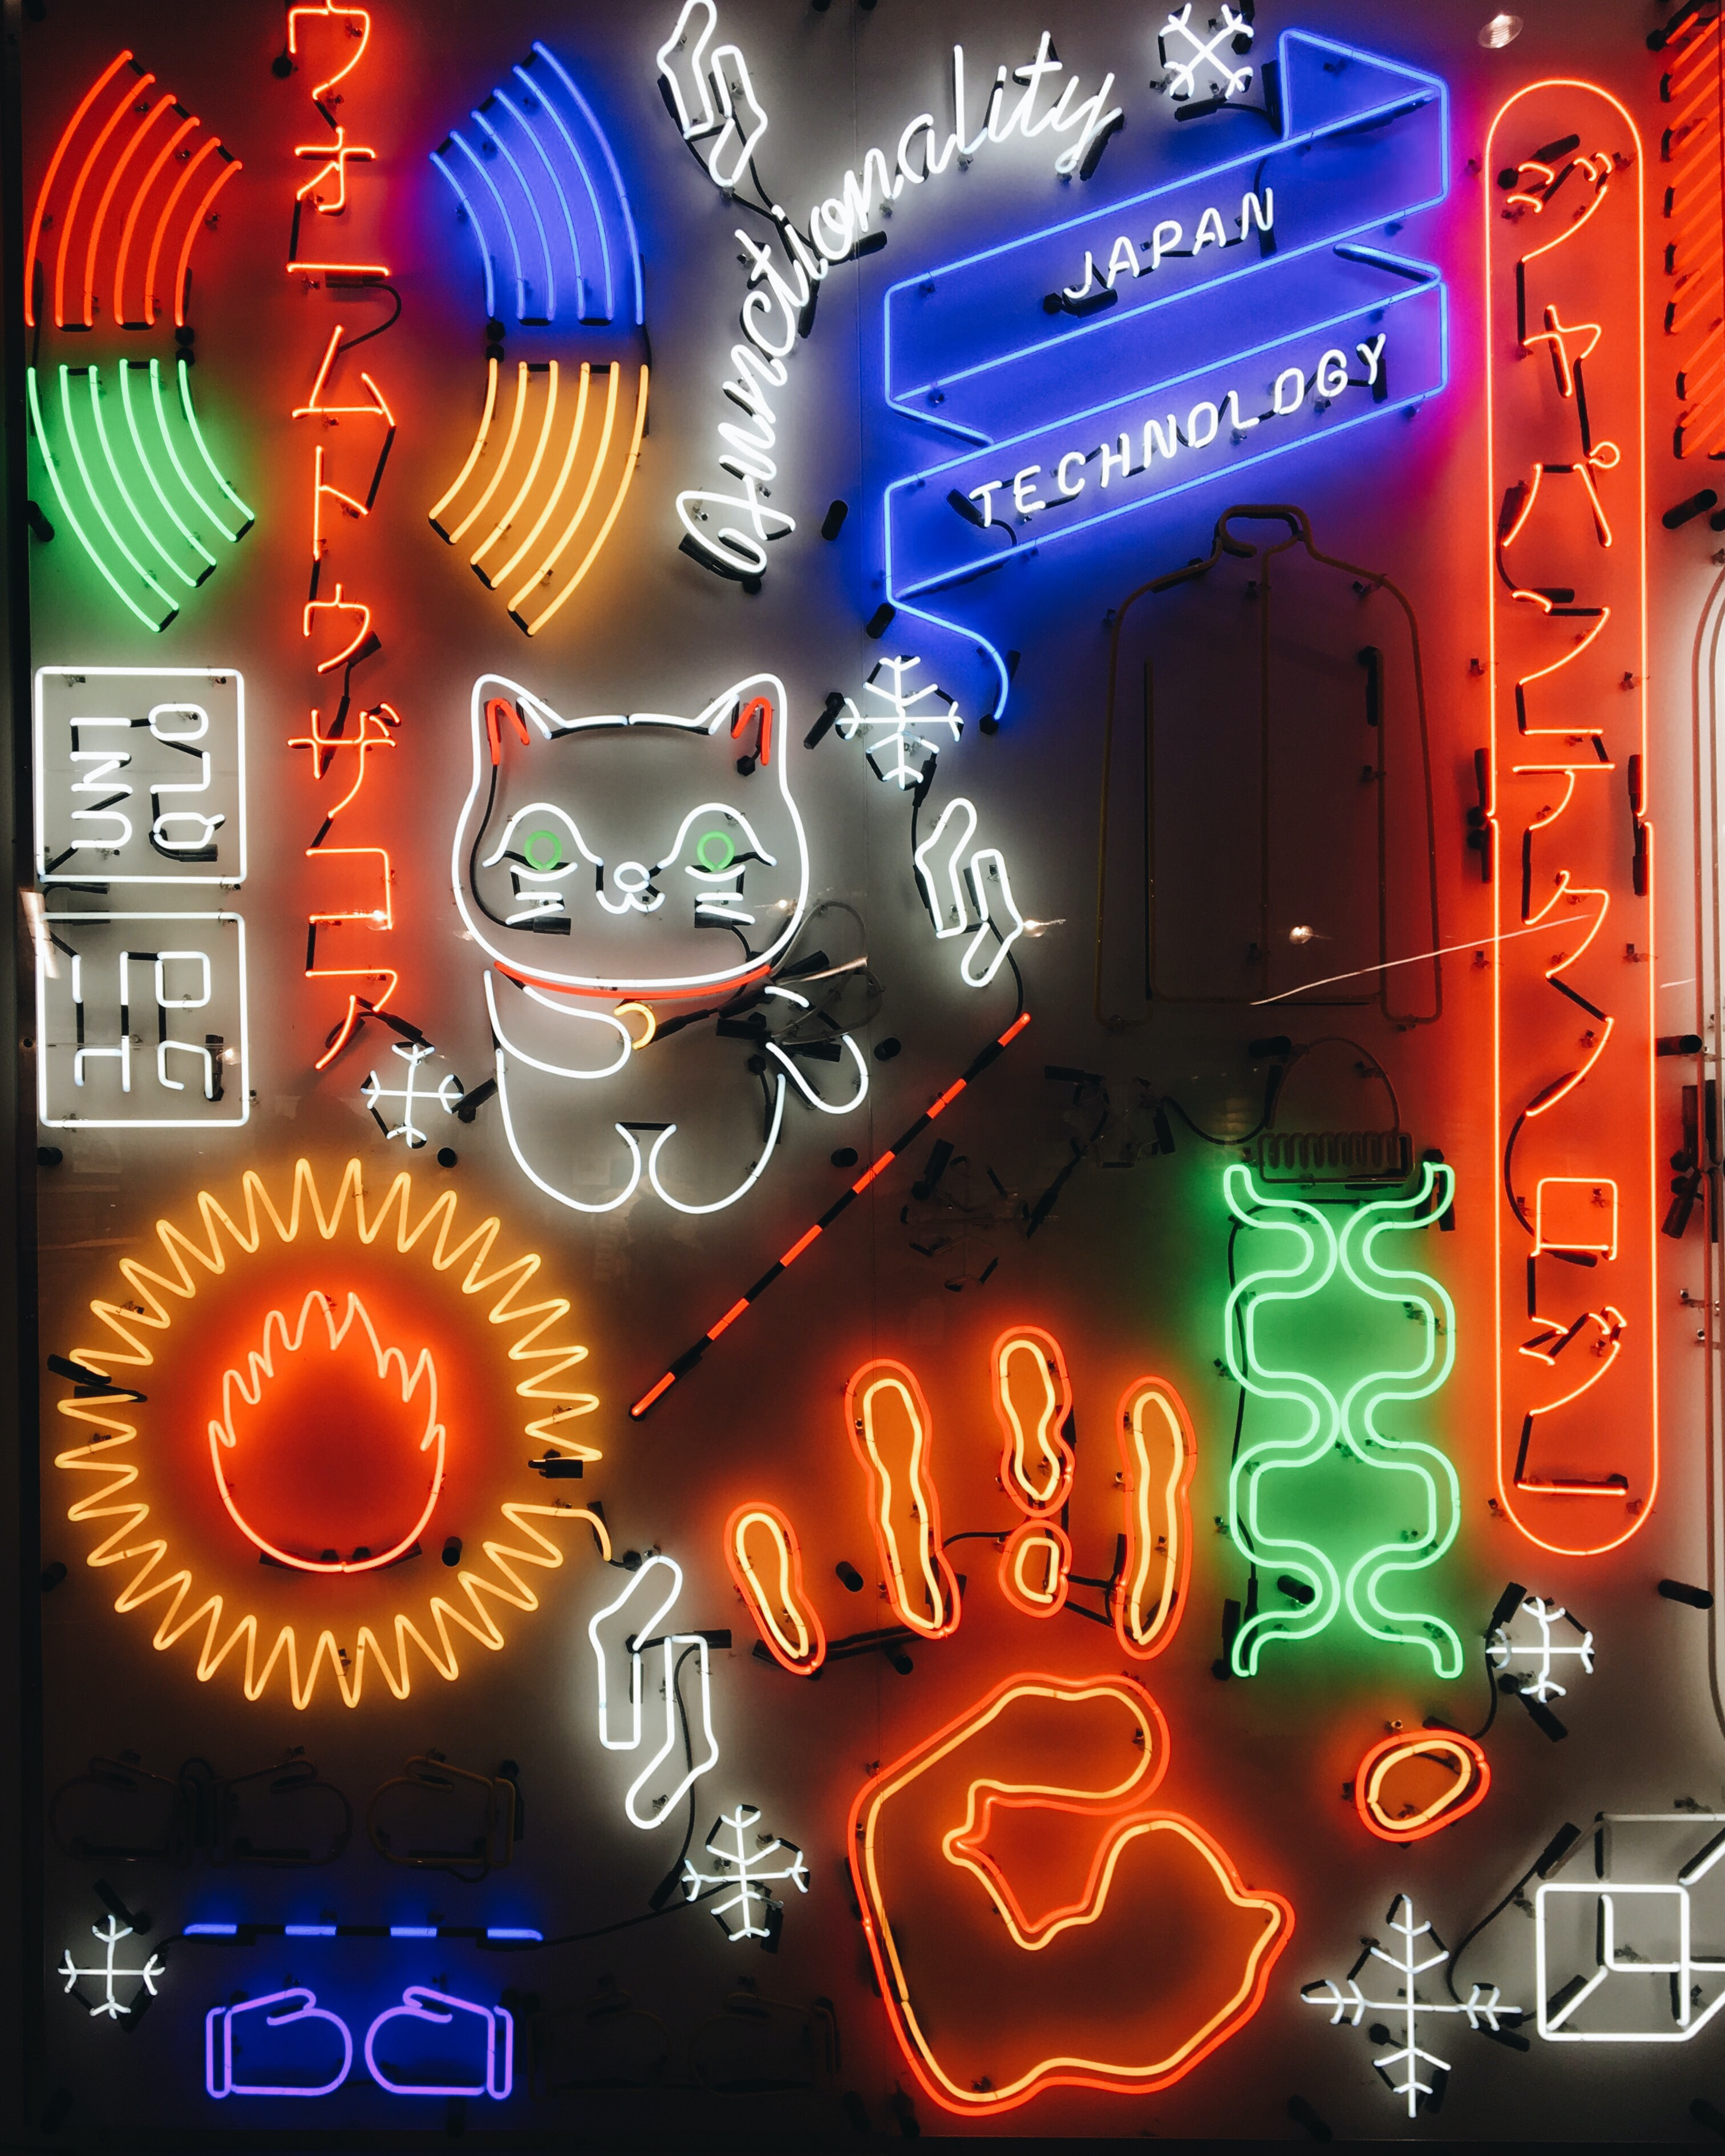 A variety of neon signs all vying for attention